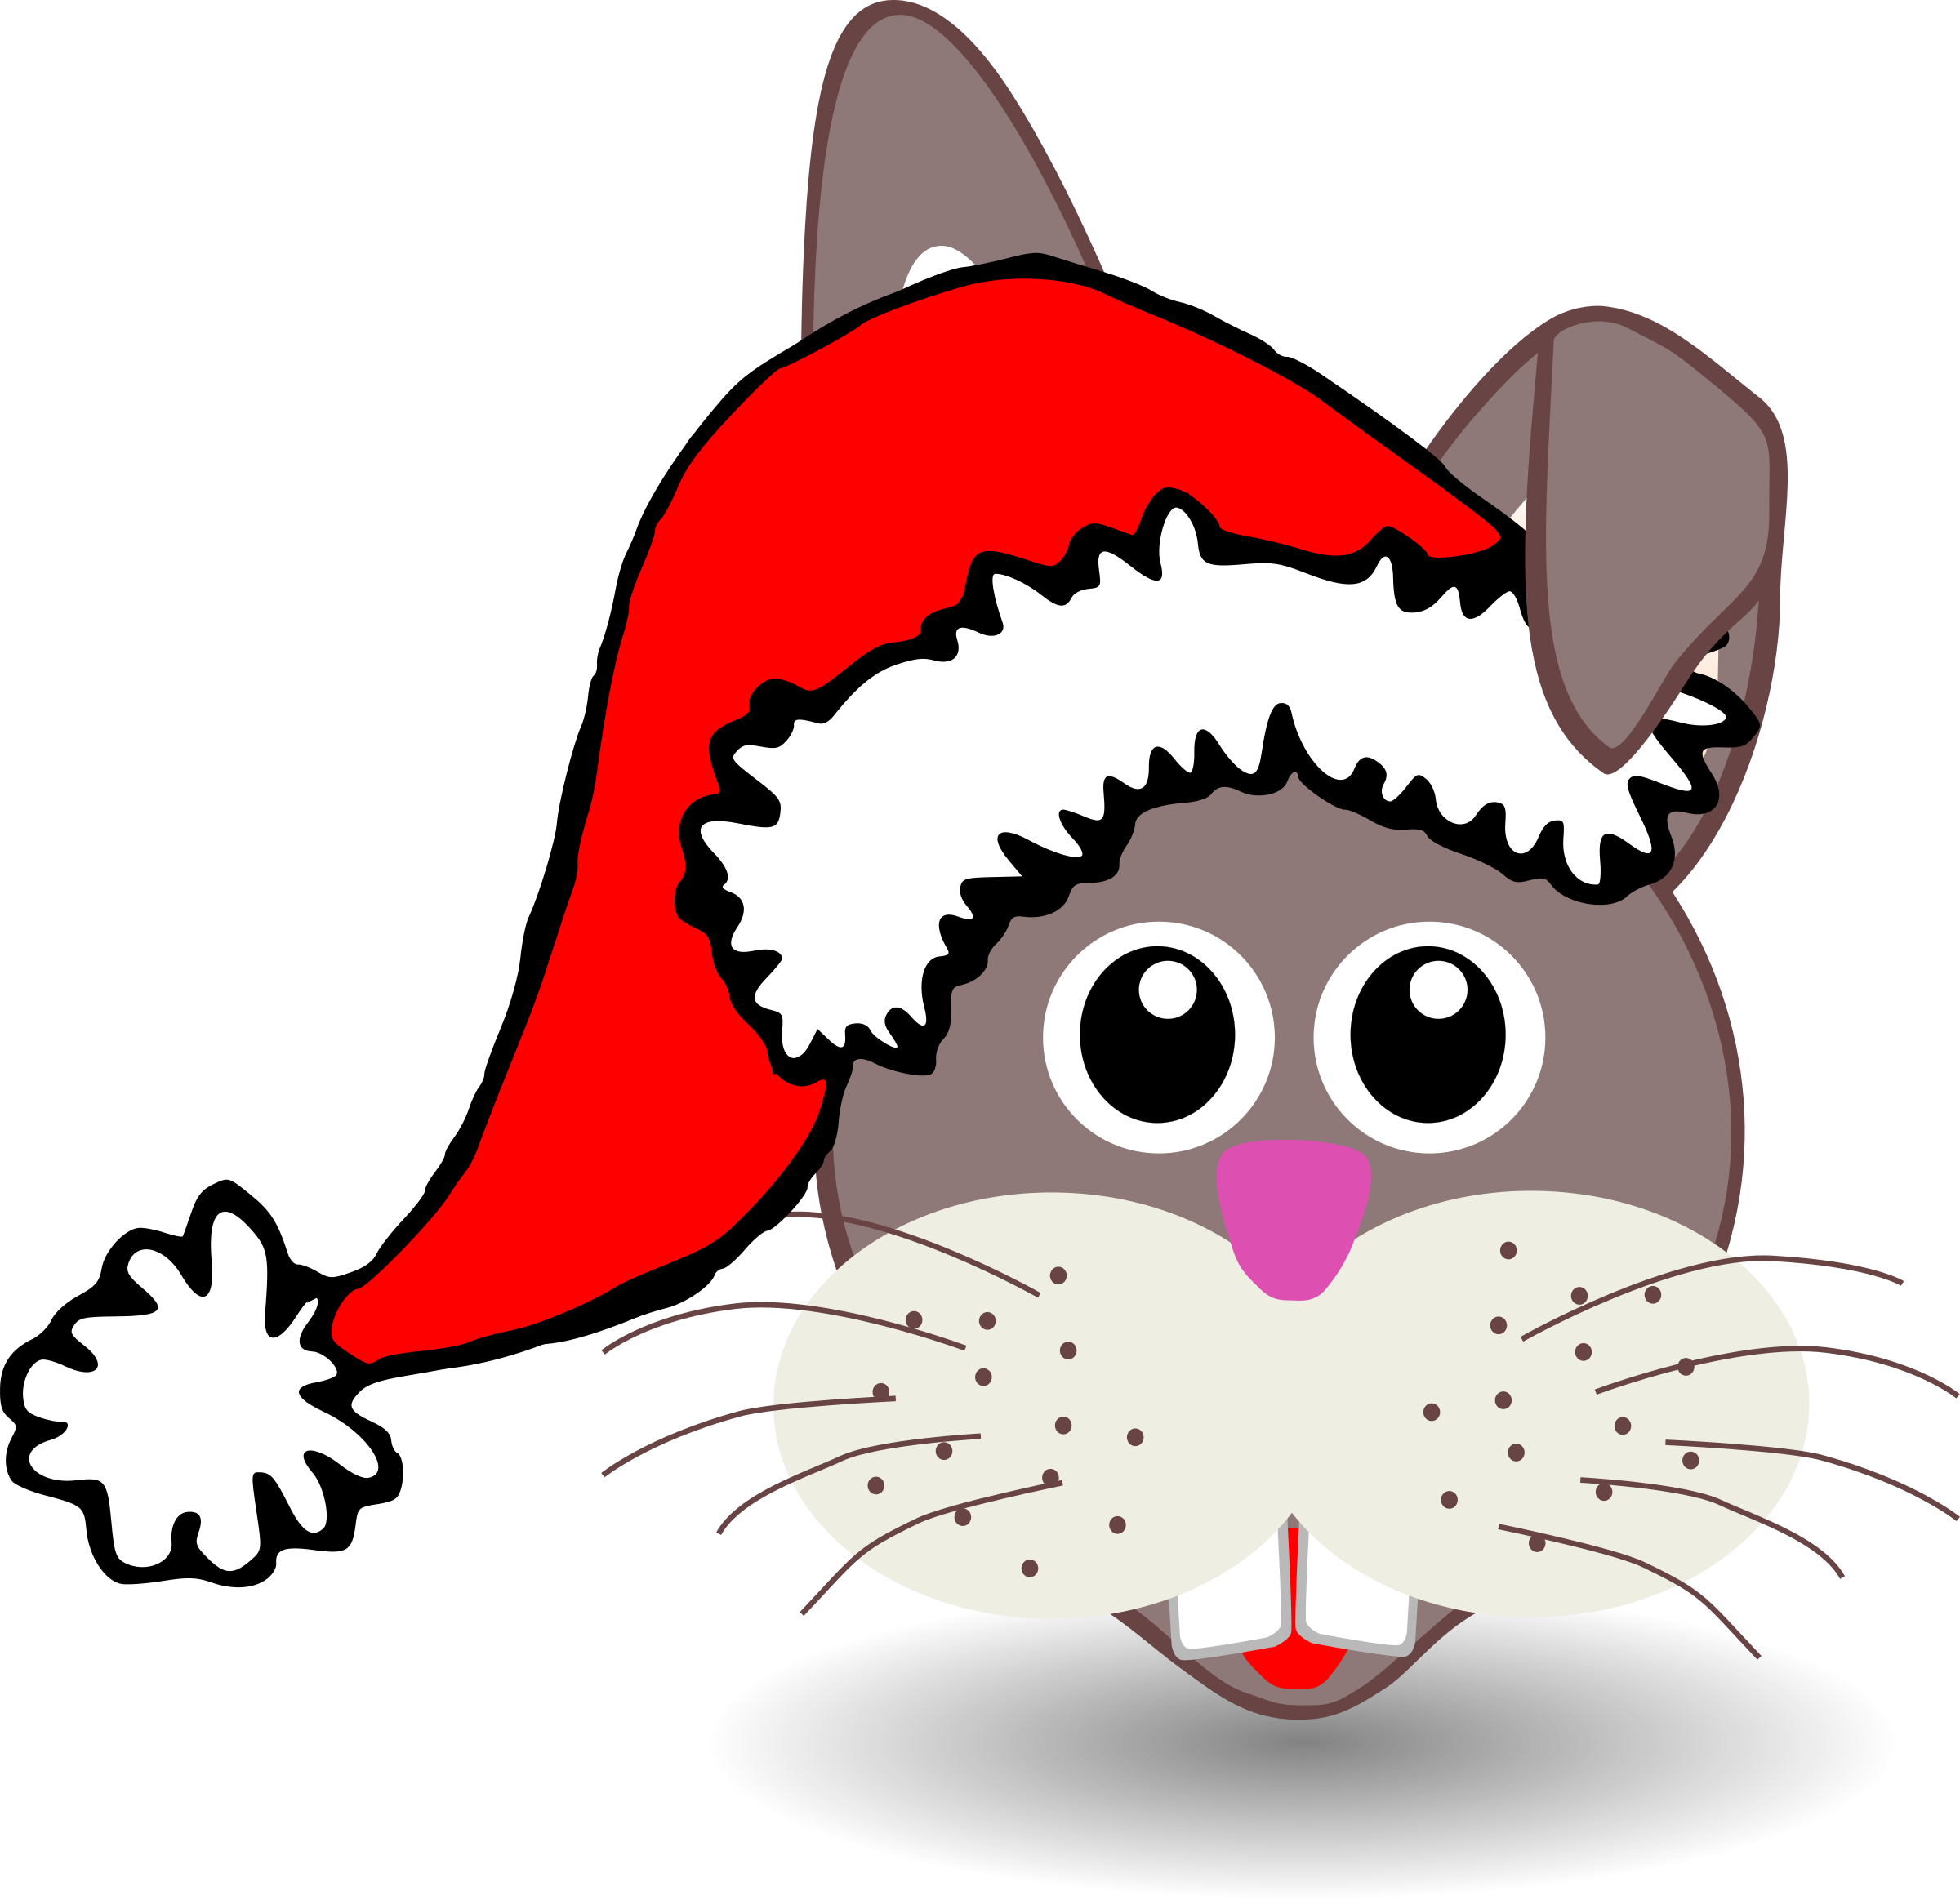 Funny bunny face with Santa Claus hat by palomaironique